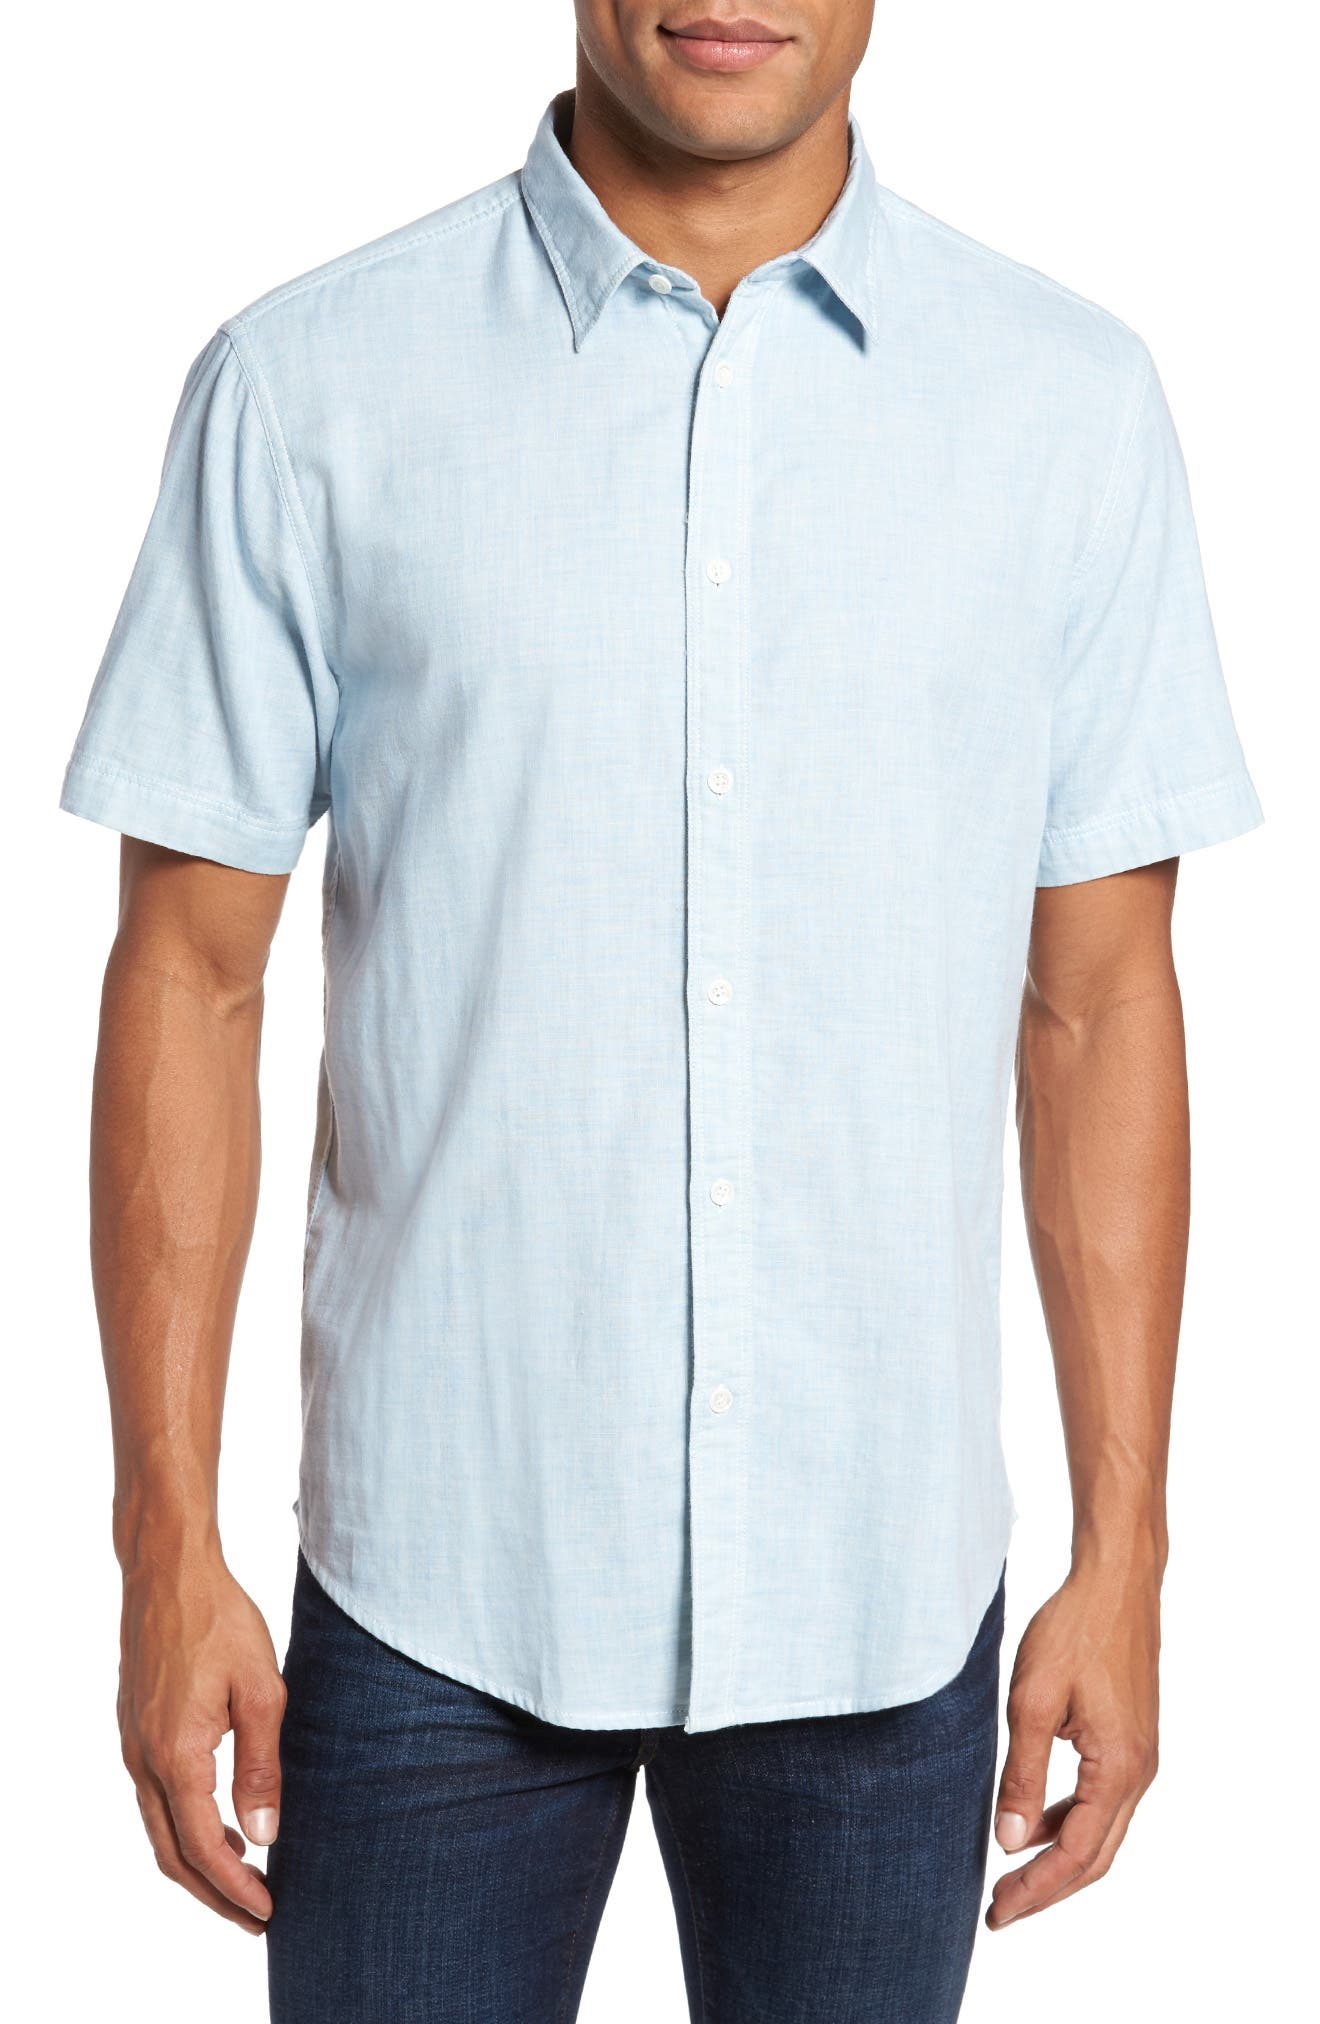 Main Image - Coastaoro Encinitas Regular Fit Sport Shirt